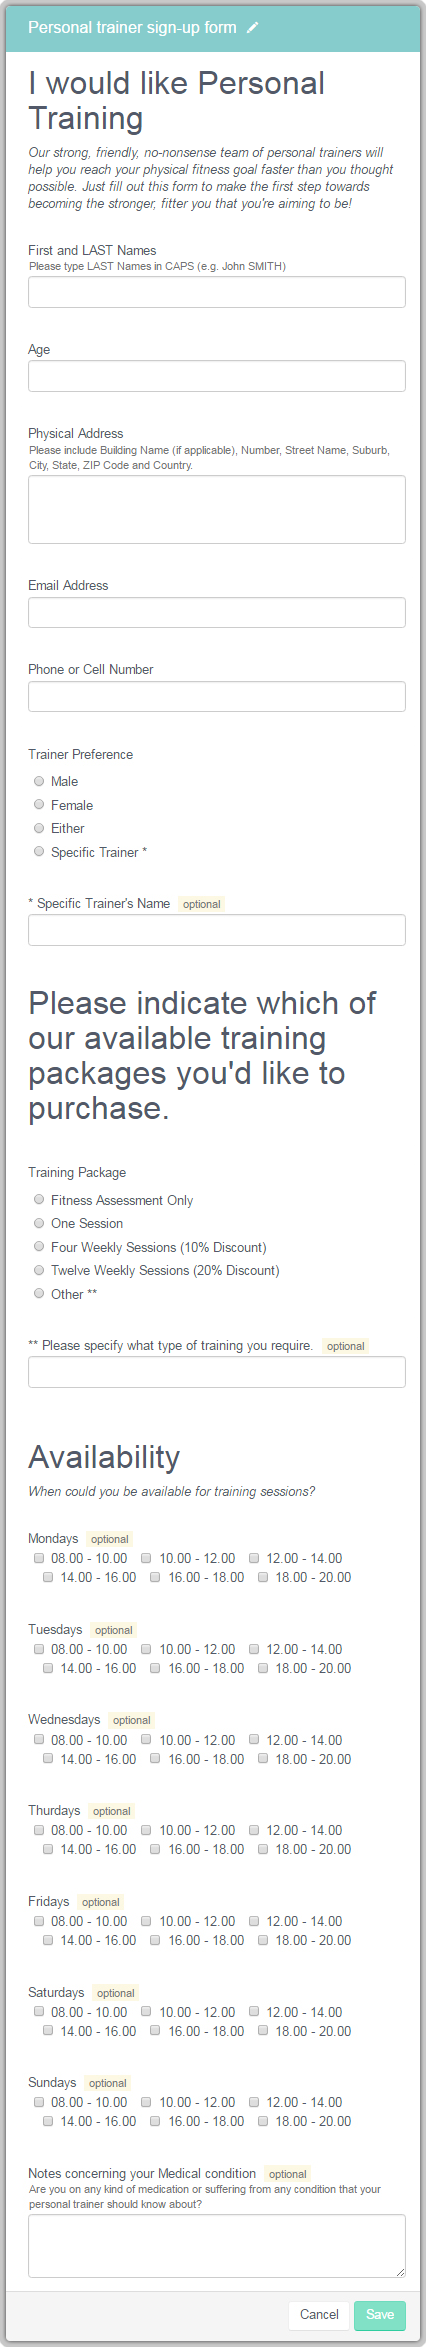 Signing up for personal trainer sessions